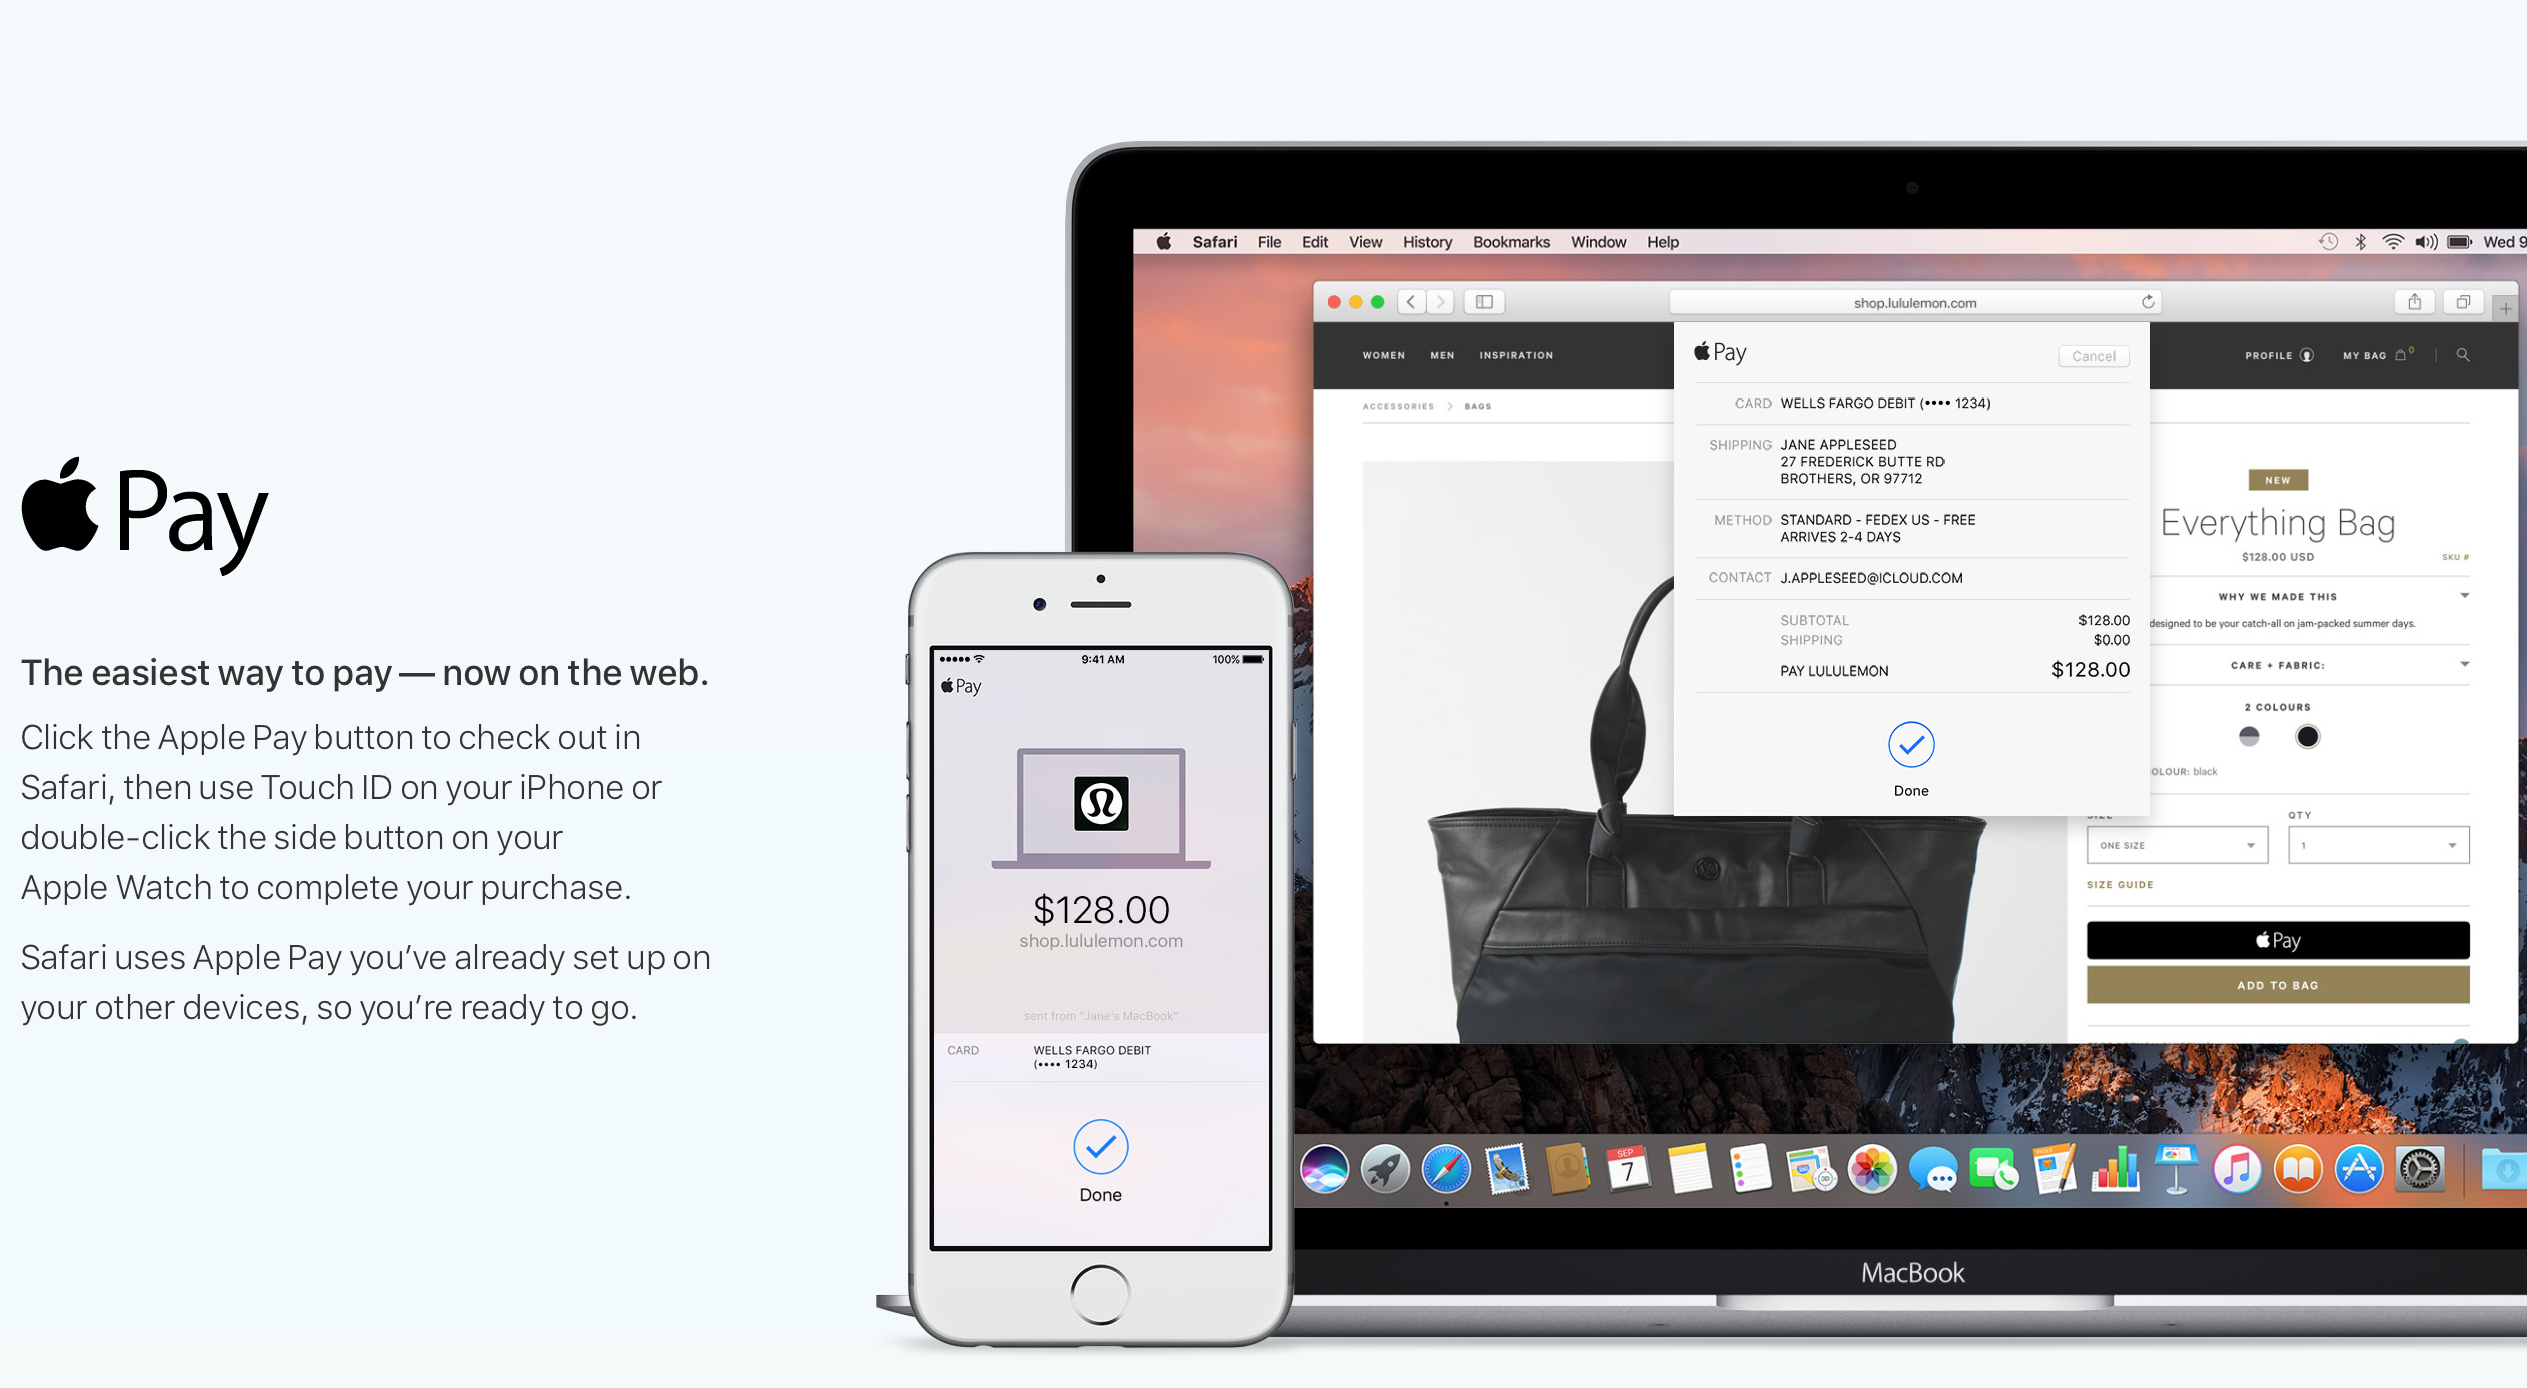 You can use macOS Sierra computers with Apple Pay on an iPhone.